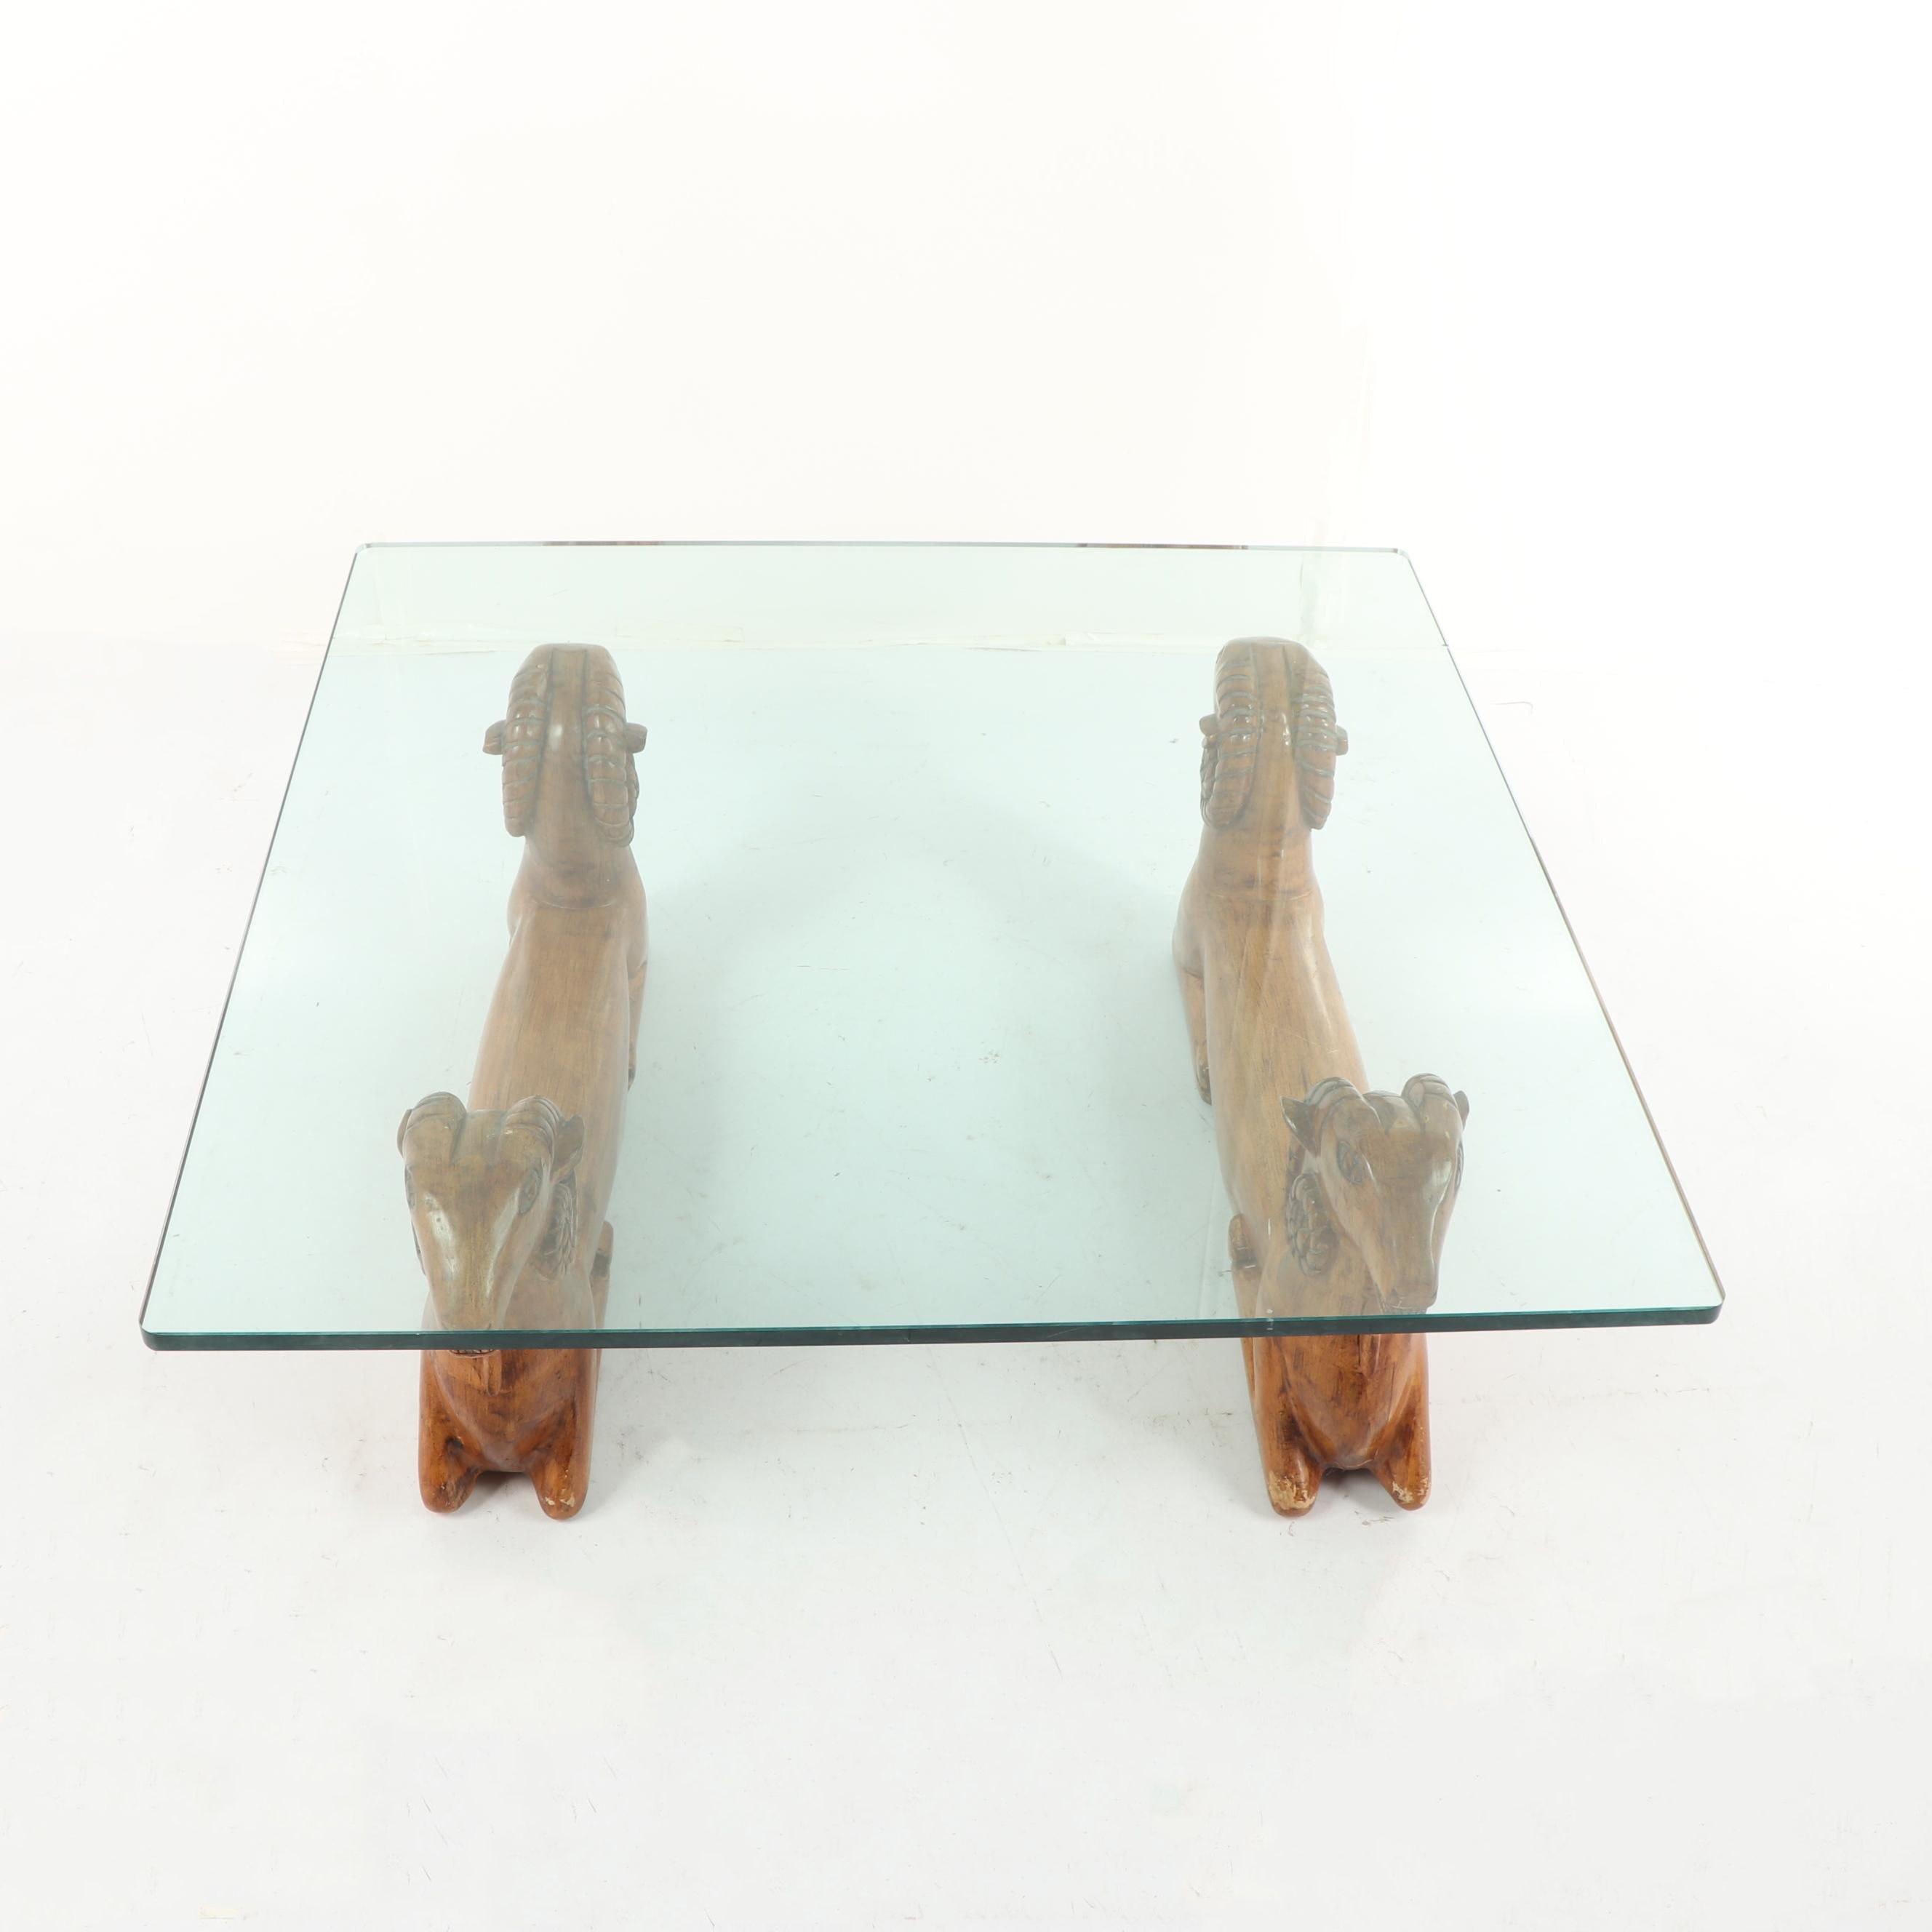 Contemporary Glass Top Coffee Table with Wooden Double Headed Ram Base